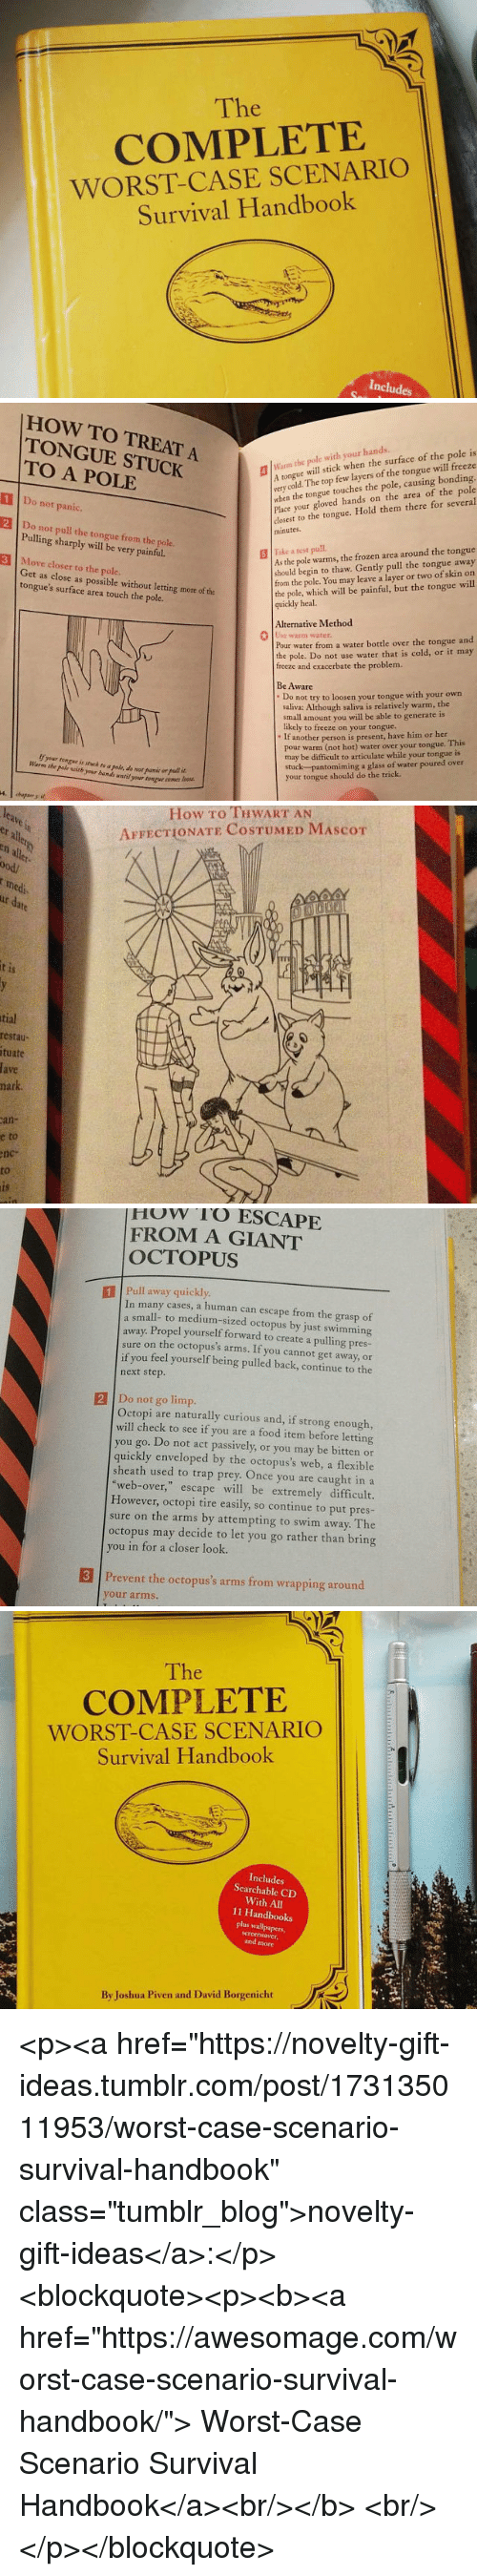 "Food, Frozen, and Trap: The  COMPLETE  WORST-CASE SCENARIO  Survival Handbook  Includes   HOW TO TREAT A  TONGUE STUCK  TO A POLE  m the pole with your hands.  A tongue  very cold. The top few layers of the tongue will freeze  when the tongue touches the pole, causing bonding.  Place your gloved hands on the area of the pole  closest to the tongue. Hold them there for several  minutes  will stick when the surface of the pole is  1 Do not panic.  2 Do not pull the tongue from the pole.  3 Move closer to the pole.  Pulling sharply will be very painful.  As the pole warms, the frozen area around the tongue  should begin to thaw. Gently pull the tongue away  from the pole. You may leave a layer or two of skin on  the pole, which will be painful, but the tongue will  quickly heal.  | İake  test pull.  Get as close as possible without letting more of the  tongue's surface area touch the pole.  Alternative Method  0  warm water  Pour water from a water bottle over the tongue and  the pole. Do not use water that is cold, or it may  freeze and exacerbate the problem.  Be Aware  Do not try to loosen your tongue with your own  saliva: Although saliva is relatively warm, the  small amount you will be able to generate is  likely to freeze on your tongue.  . If  if your tongue is stuck to a pale, do nor panic er pullit  Warm the pole with your bands until your tongue comes loor  another person is present, have him or her  pour warm (not hot) water over your tongue. This  may be difficult to articulate while your tongue is  stuck  your tongue should do the trick.  pantomiming a glass of water poured over   How To THWART AN  AFFECTIONATE COSTUMED MAScoT  er  all  ood/  medi  1S  tial  restau  tuate  fave  hark  an-  e  to  nc-  to   How rO ESCAPE  FROM A GIANT  OCTOPUS  1 Pull away quickly  In many cases, a human can escape from the grasp of  small- to medium-sized octopus by just swimming  away. Propel yourself forward to create a pulling pres-  sure on the octopus's arms. If you cannot get away, or  if you feel yourself being pulled back, continue to the  next step.  2 Do not go limp.  Octopi are naturally curious and, if strong enough,  will check to see if you are a food item before letting  you go. Do not act passively, or you may be bitten or  quickly enveloped by the octopus's web, a flexible  sheath used to trap prey. Once you are caught in a  ""web-over,"" escape will be extremely difficult.  However, octopi tire easily, so continue to put pres-  sure on the arms by attempting to swim away. The  octopus may decide to let you go rather than bring  ou in for a closer look.  3 Prevent the octopus's arms from wrapping around  your arms.   The  COMPLETE  WORST-CASE SCENARIO  Survival Handbook  Includes  Searchable CD  With All  11 Handbooks  plus wallpapers,  and more  By Joshua Piven and David Borgenicht <p><a href=""https://novelty-gift-ideas.tumblr.com/post/173135011953/worst-case-scenario-survival-handbook"" class=""tumblr_blog"">novelty-gift-ideas</a>:</p><blockquote><p><b><a href=""https://awesomage.com/worst-case-scenario-survival-handbook/"">  Worst-Case Scenario Survival Handbook</a><br/></b>  <br/></p></blockquote>"